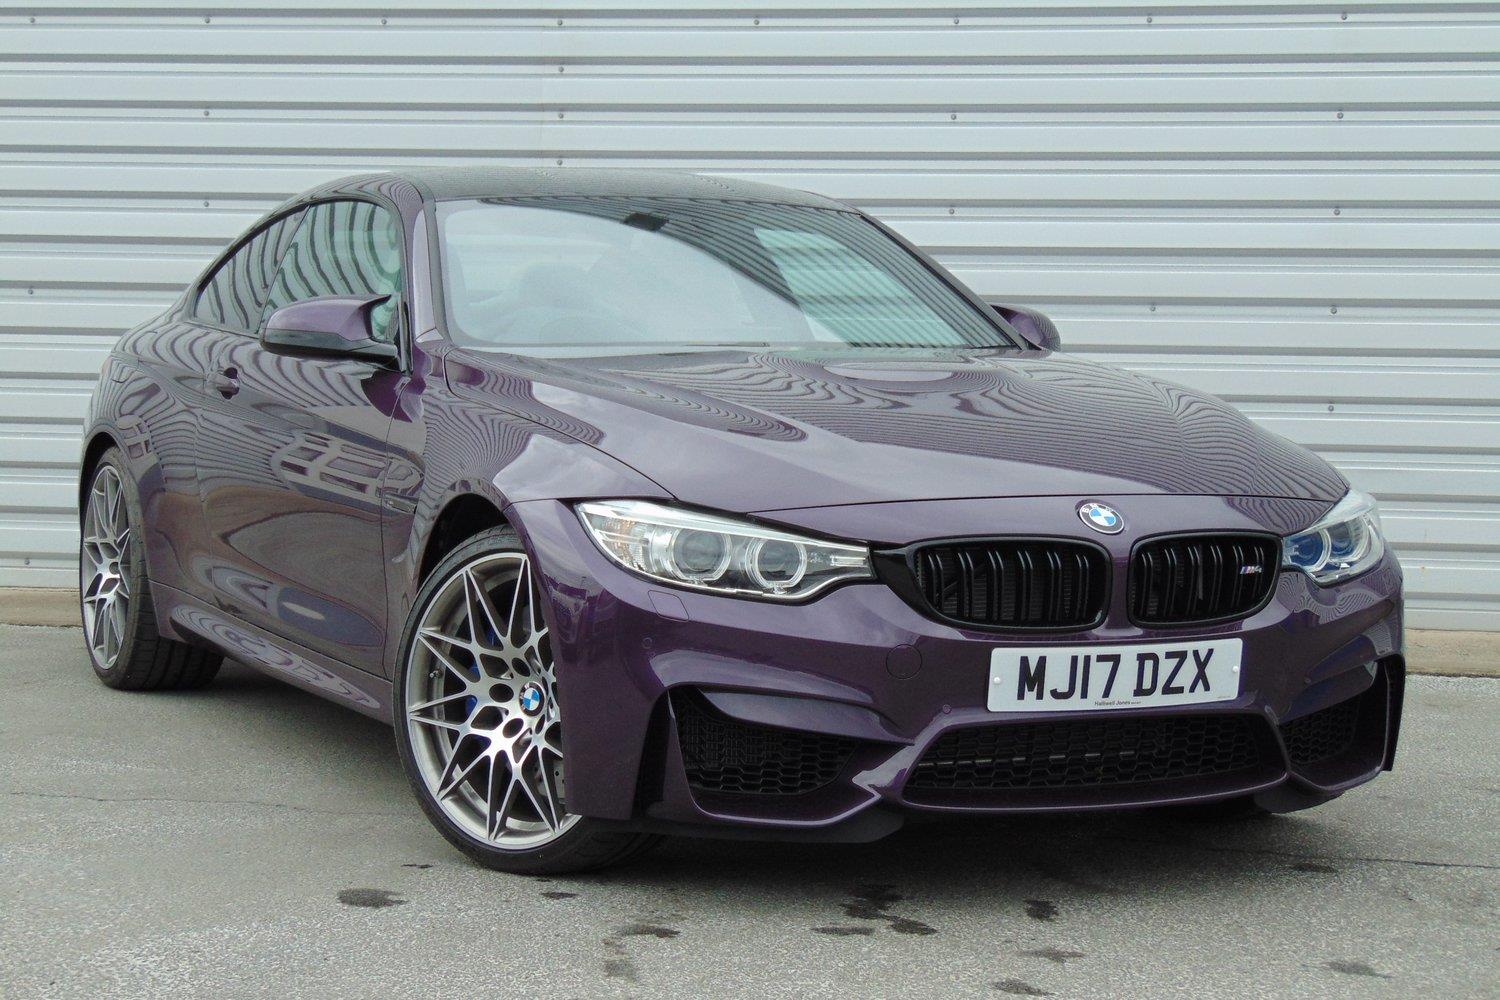 BMW M4 Coupé MJ17DZX - Image 1